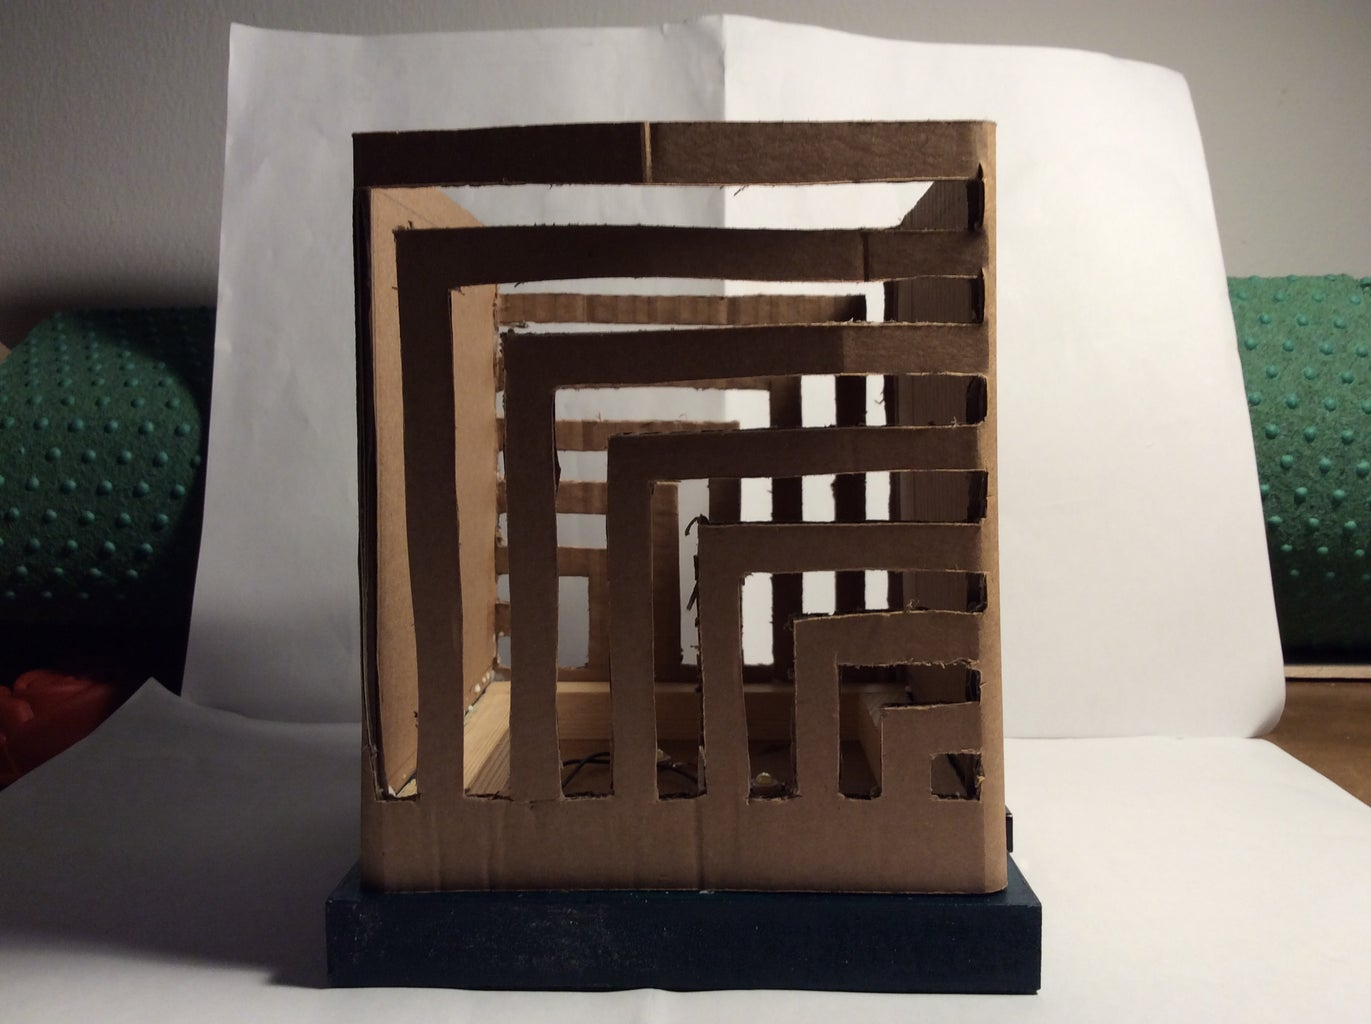 Glue the Cardboard to the MDF